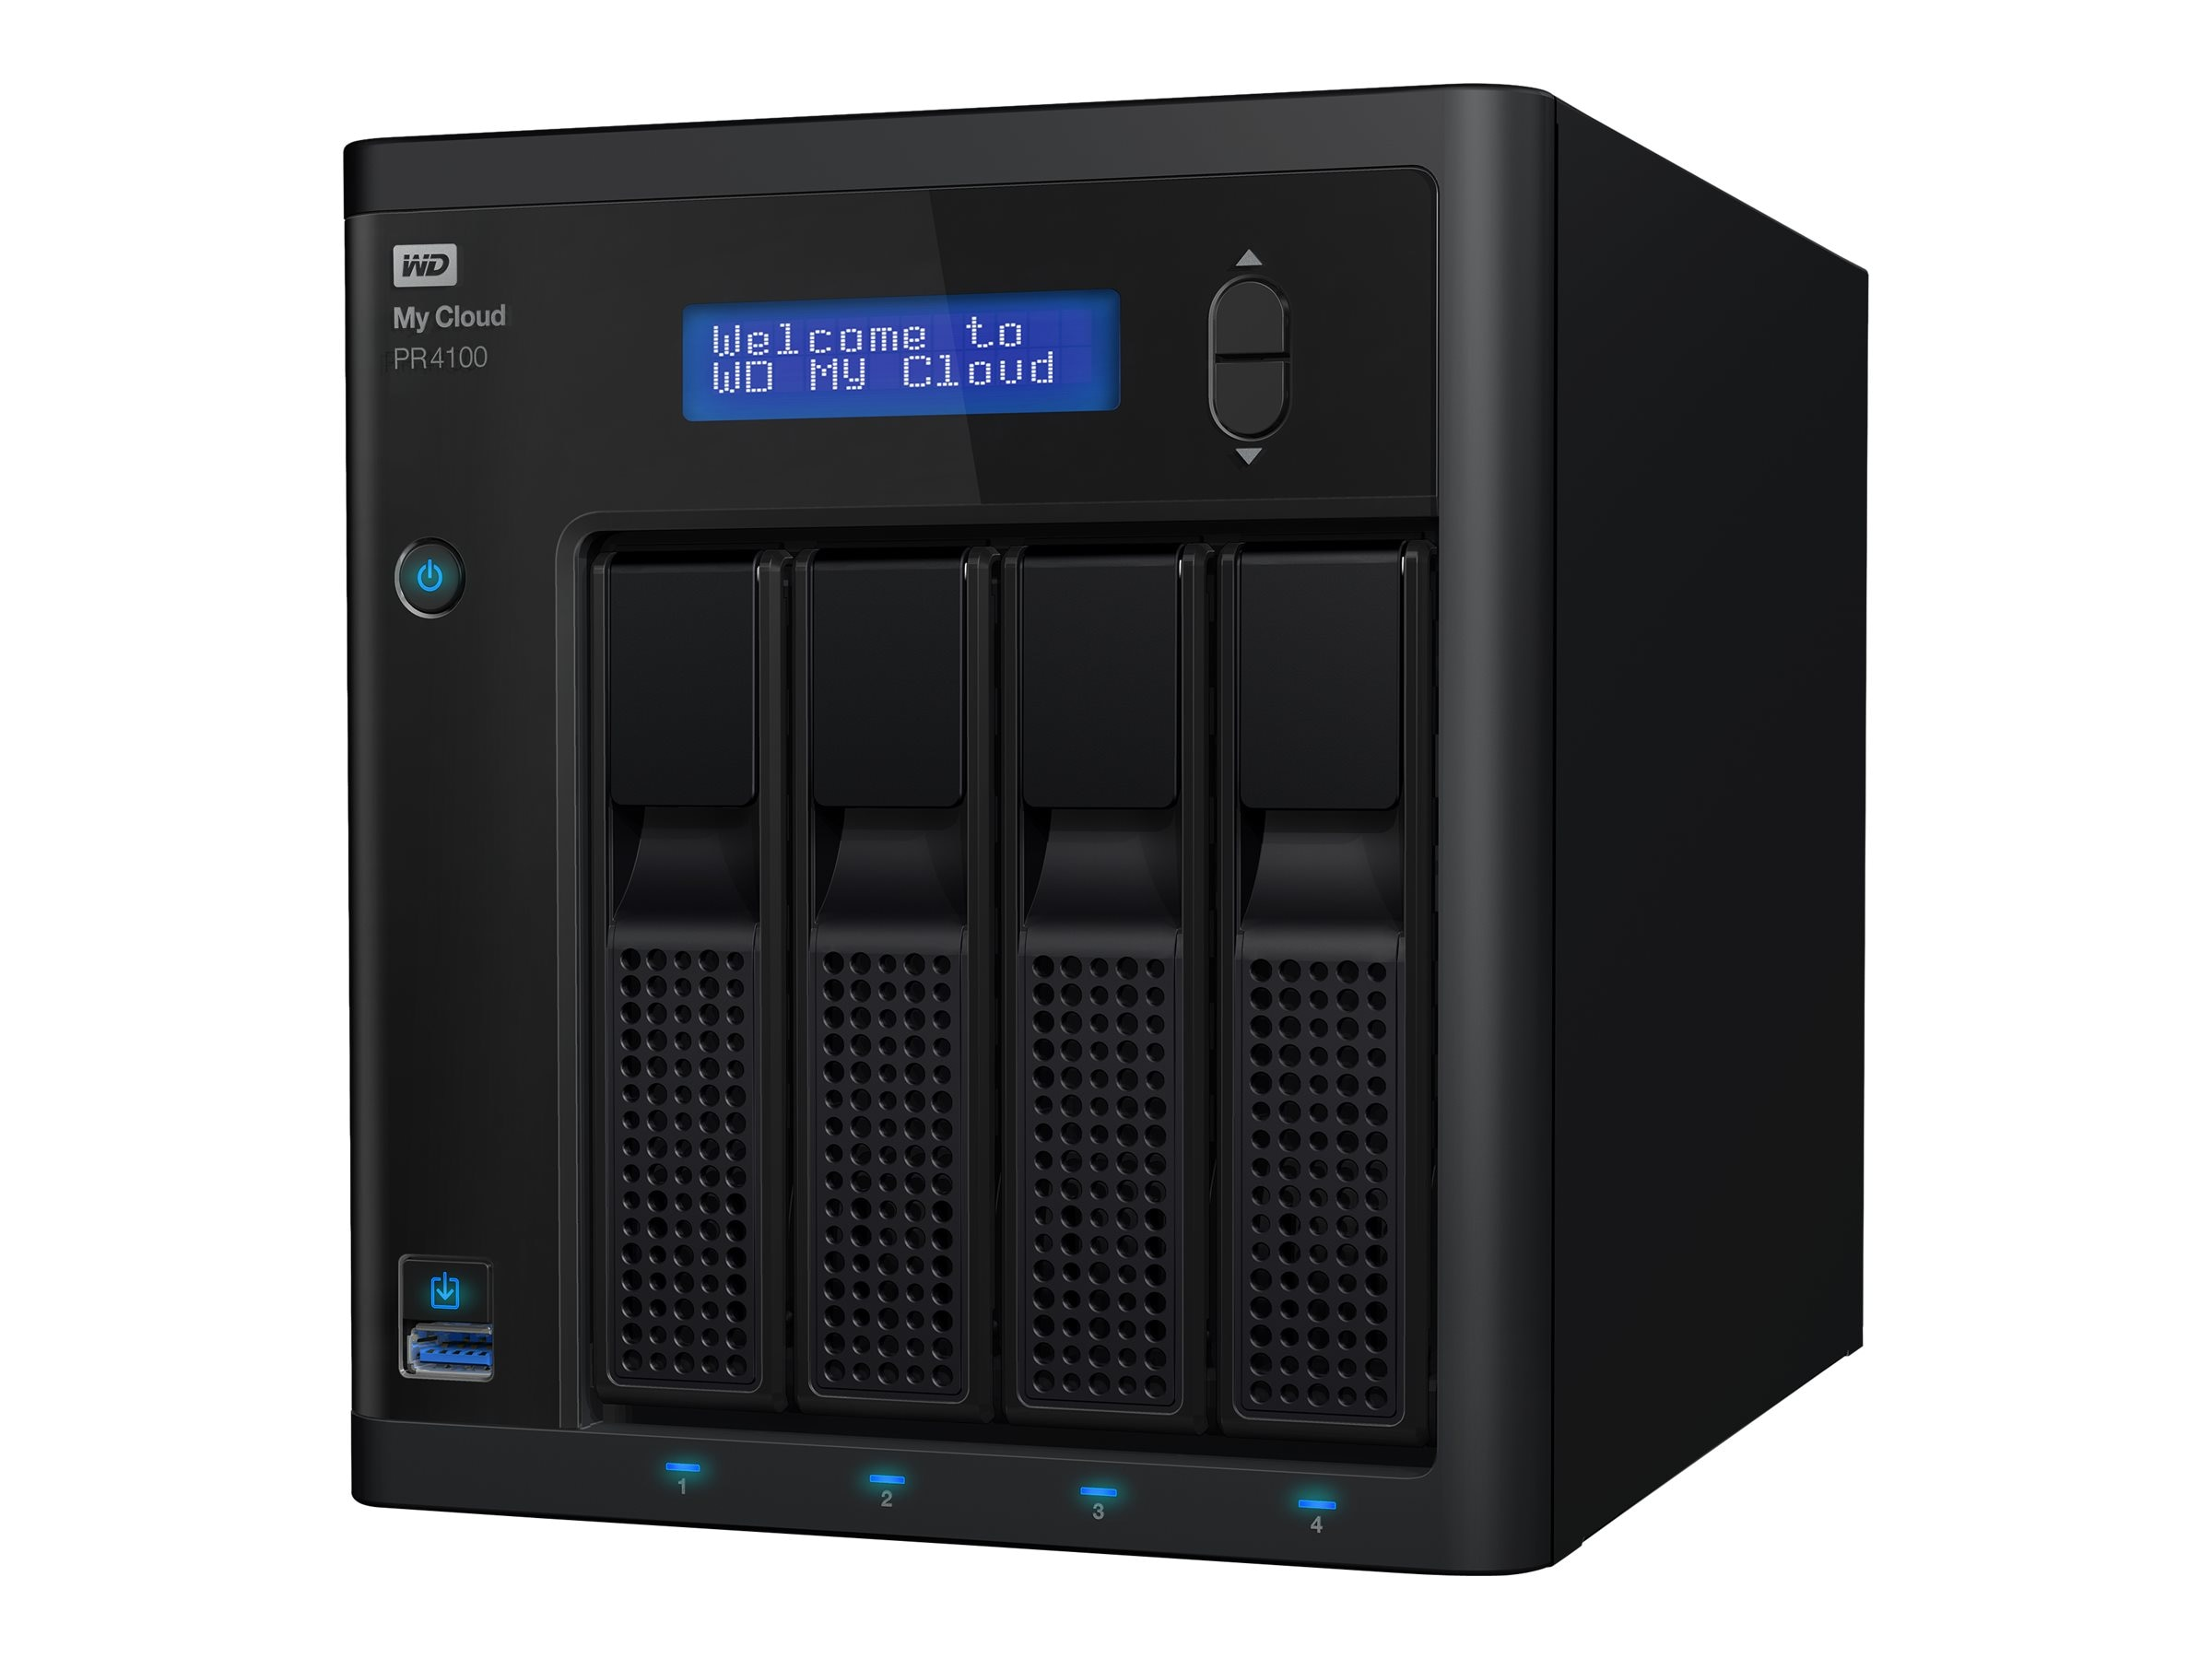 WD My Cloud Pro Series PR4100 Storage - Diskless, WDBNFA0000NBK-NESN